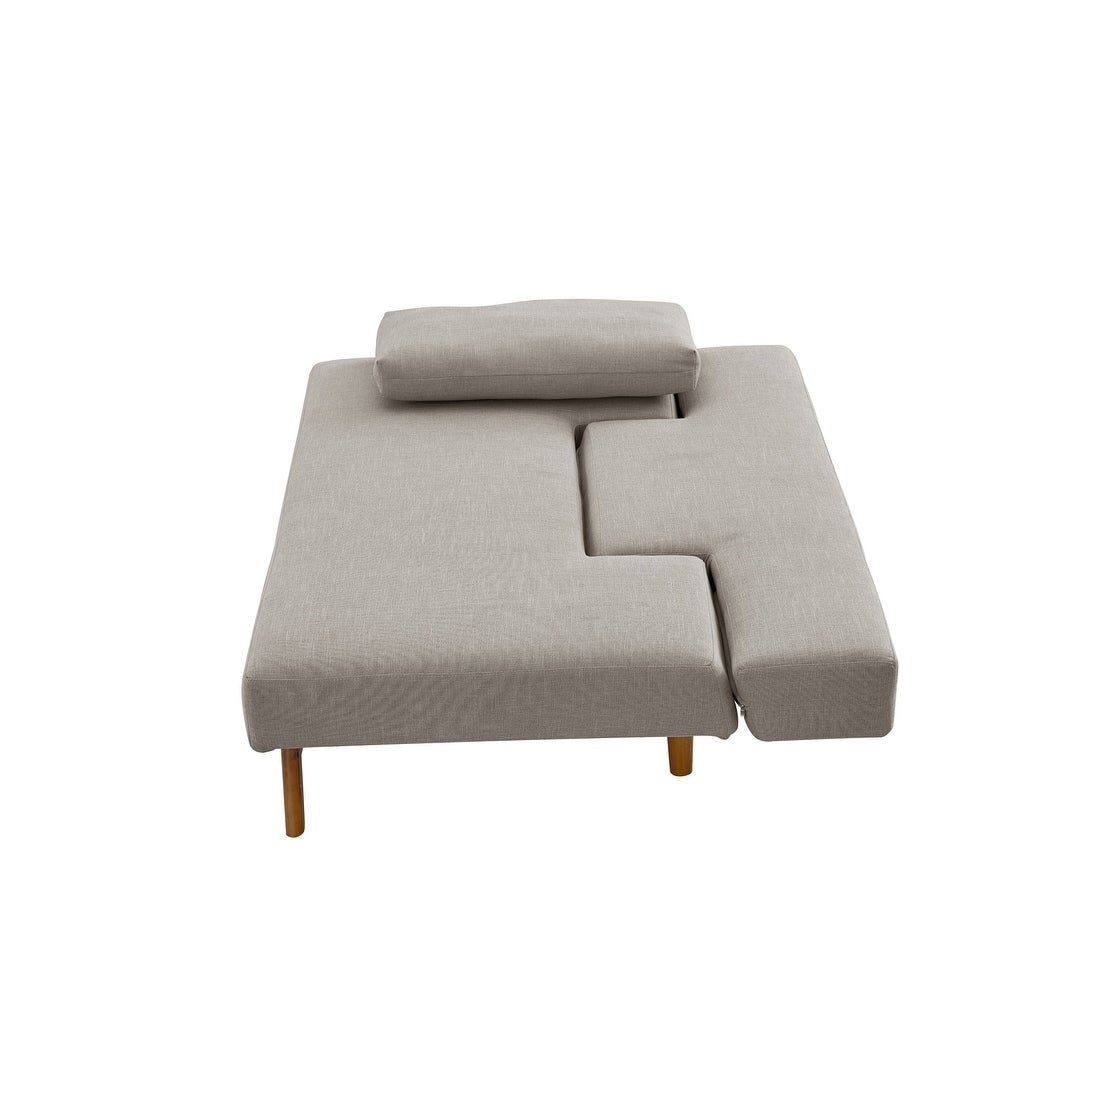 Astounding Luca Home Light Beige Sofa Bed Download Free Architecture Designs Ogrambritishbridgeorg